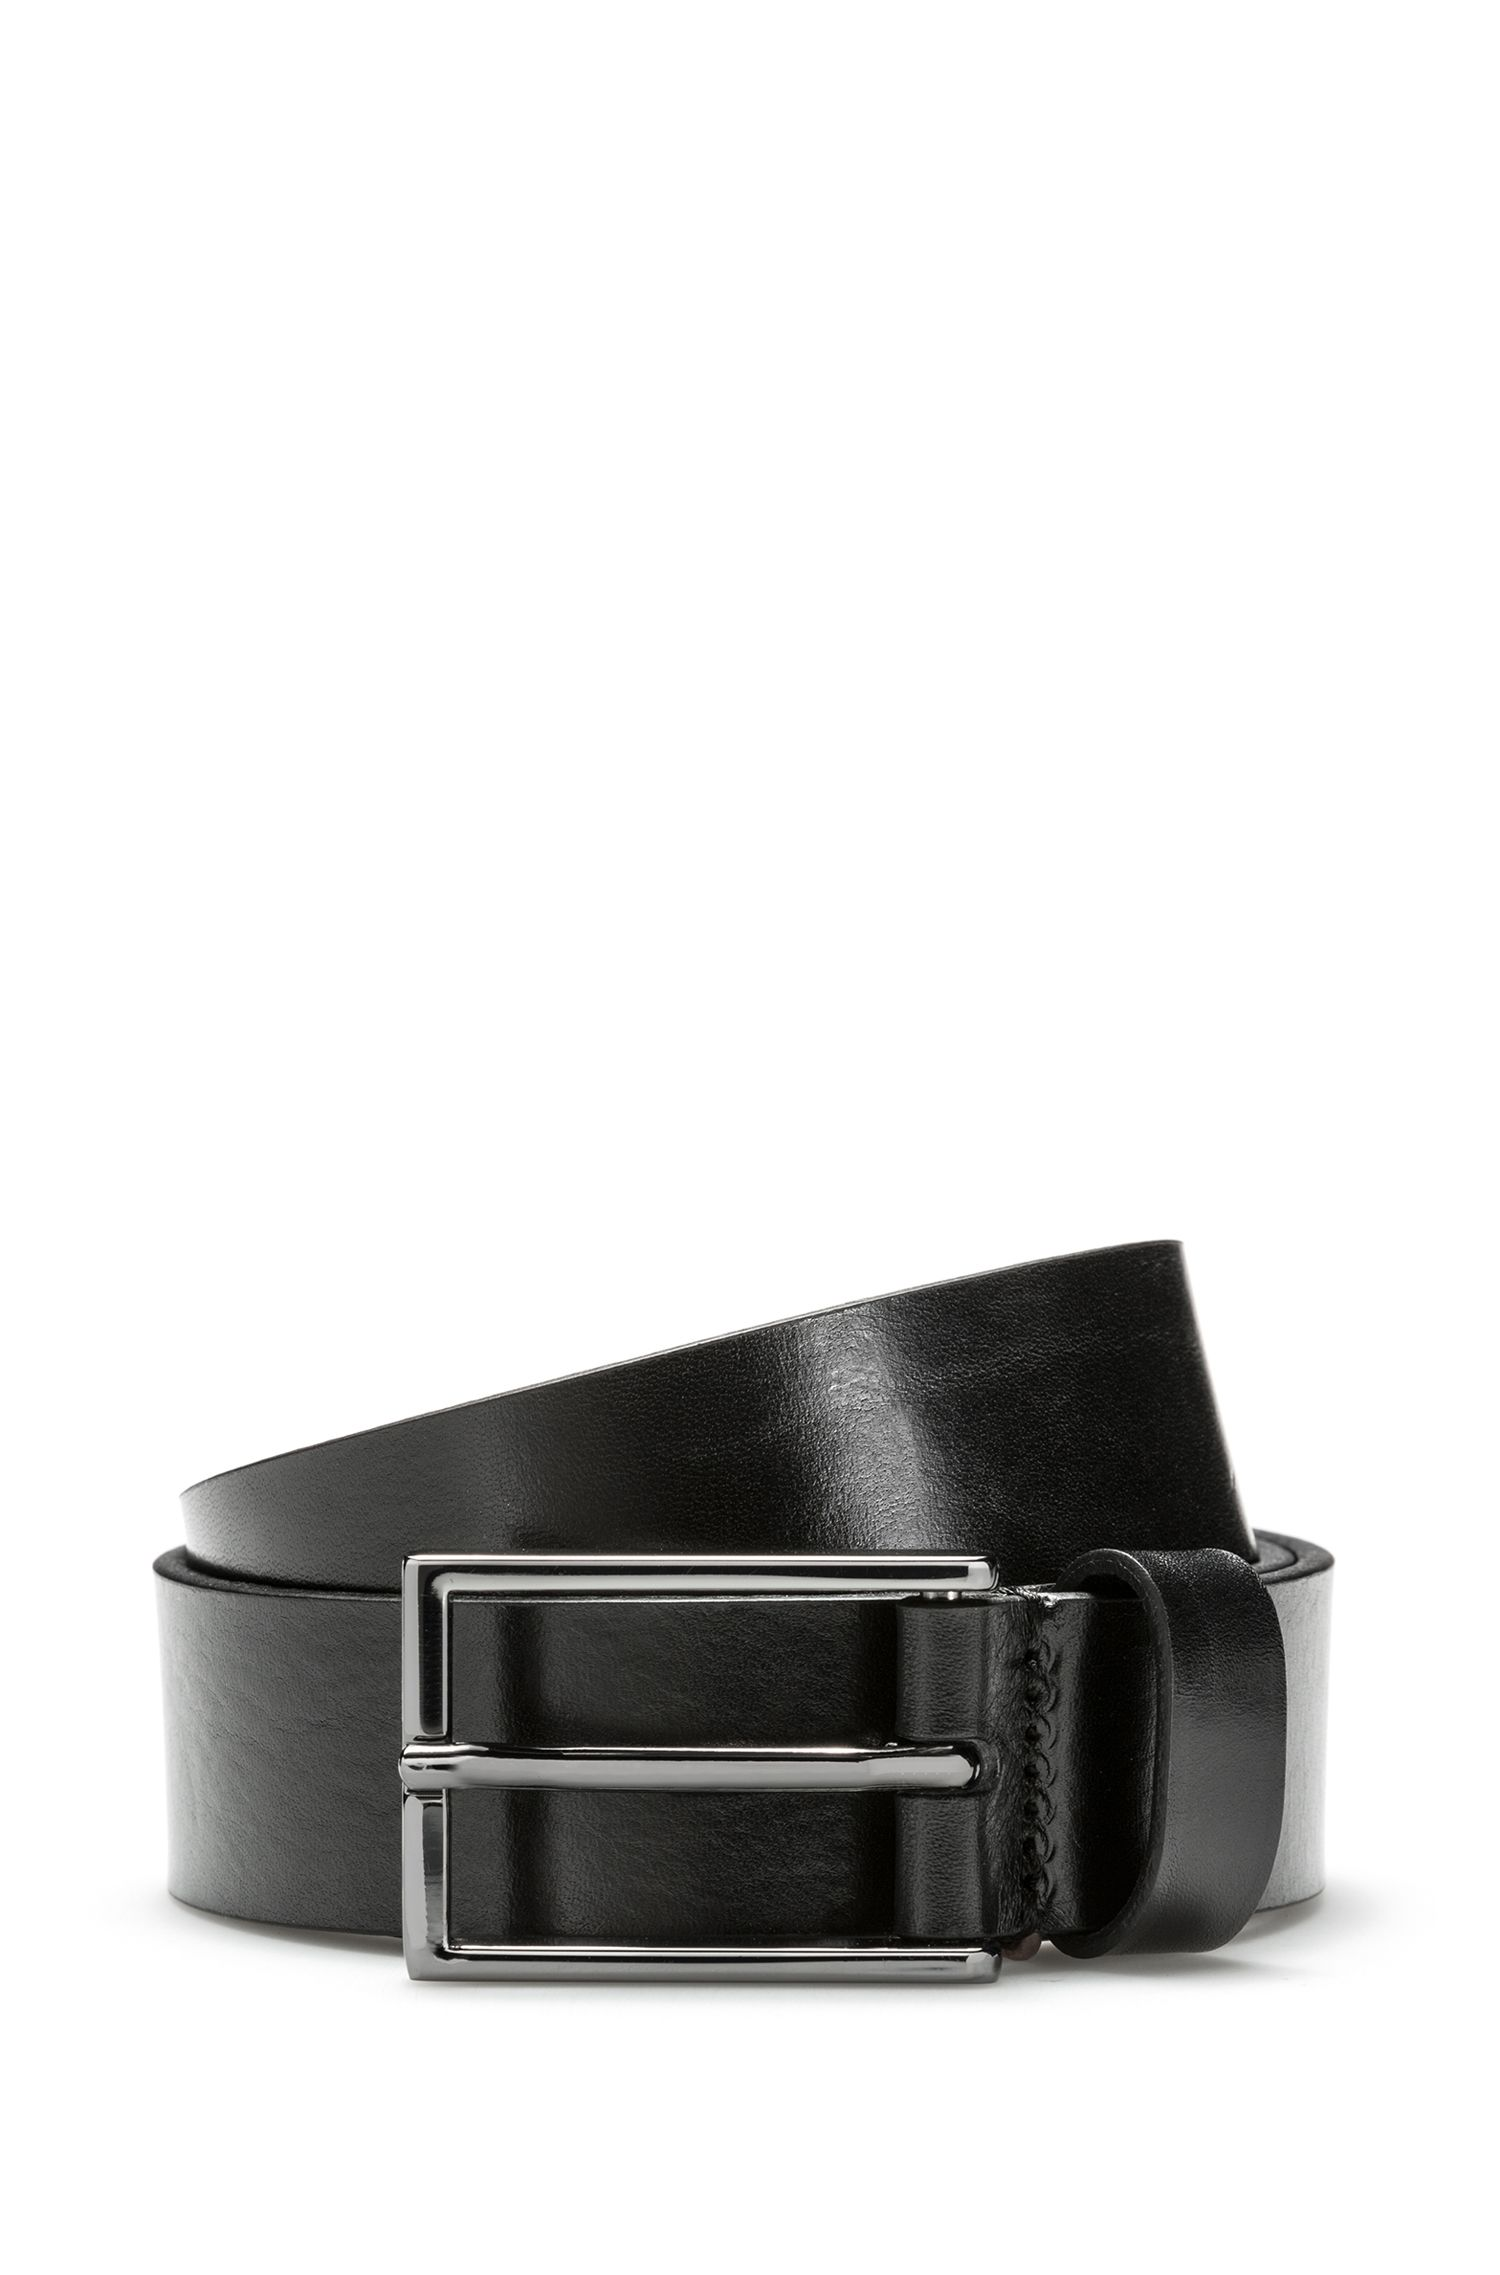 Leather belt with reverse logo embossing